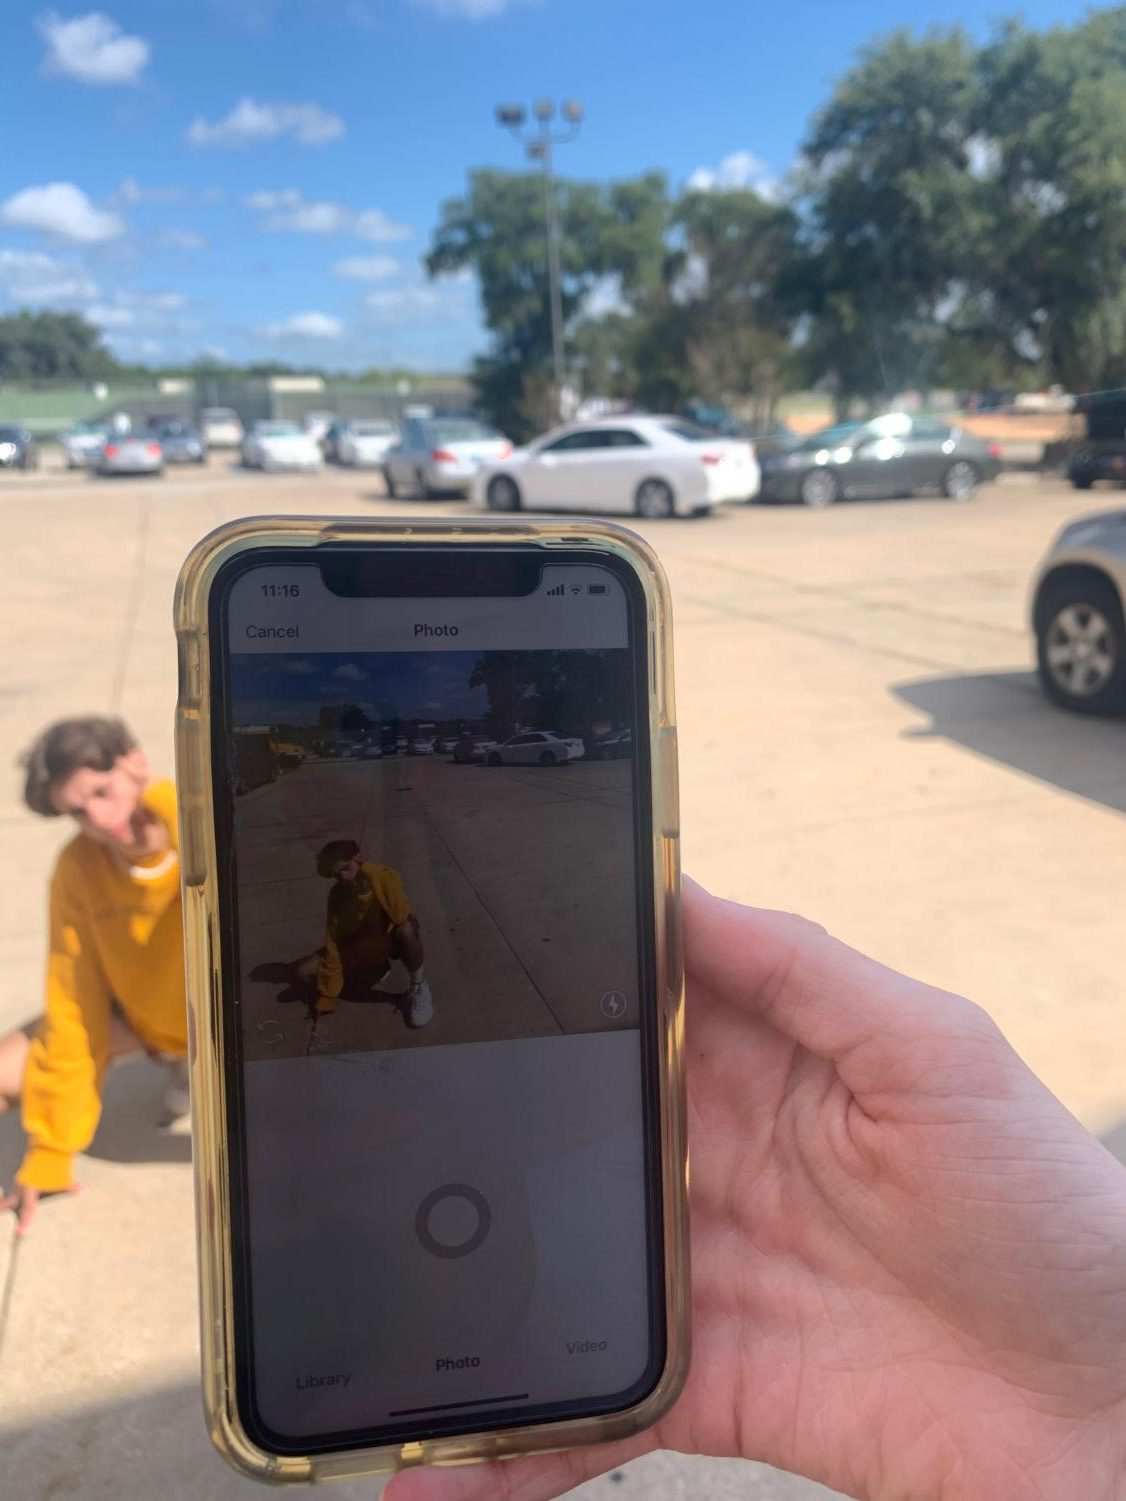 Students use instagram, a major social media platform. The student takes a instagram picture with a phone to post on instagram .